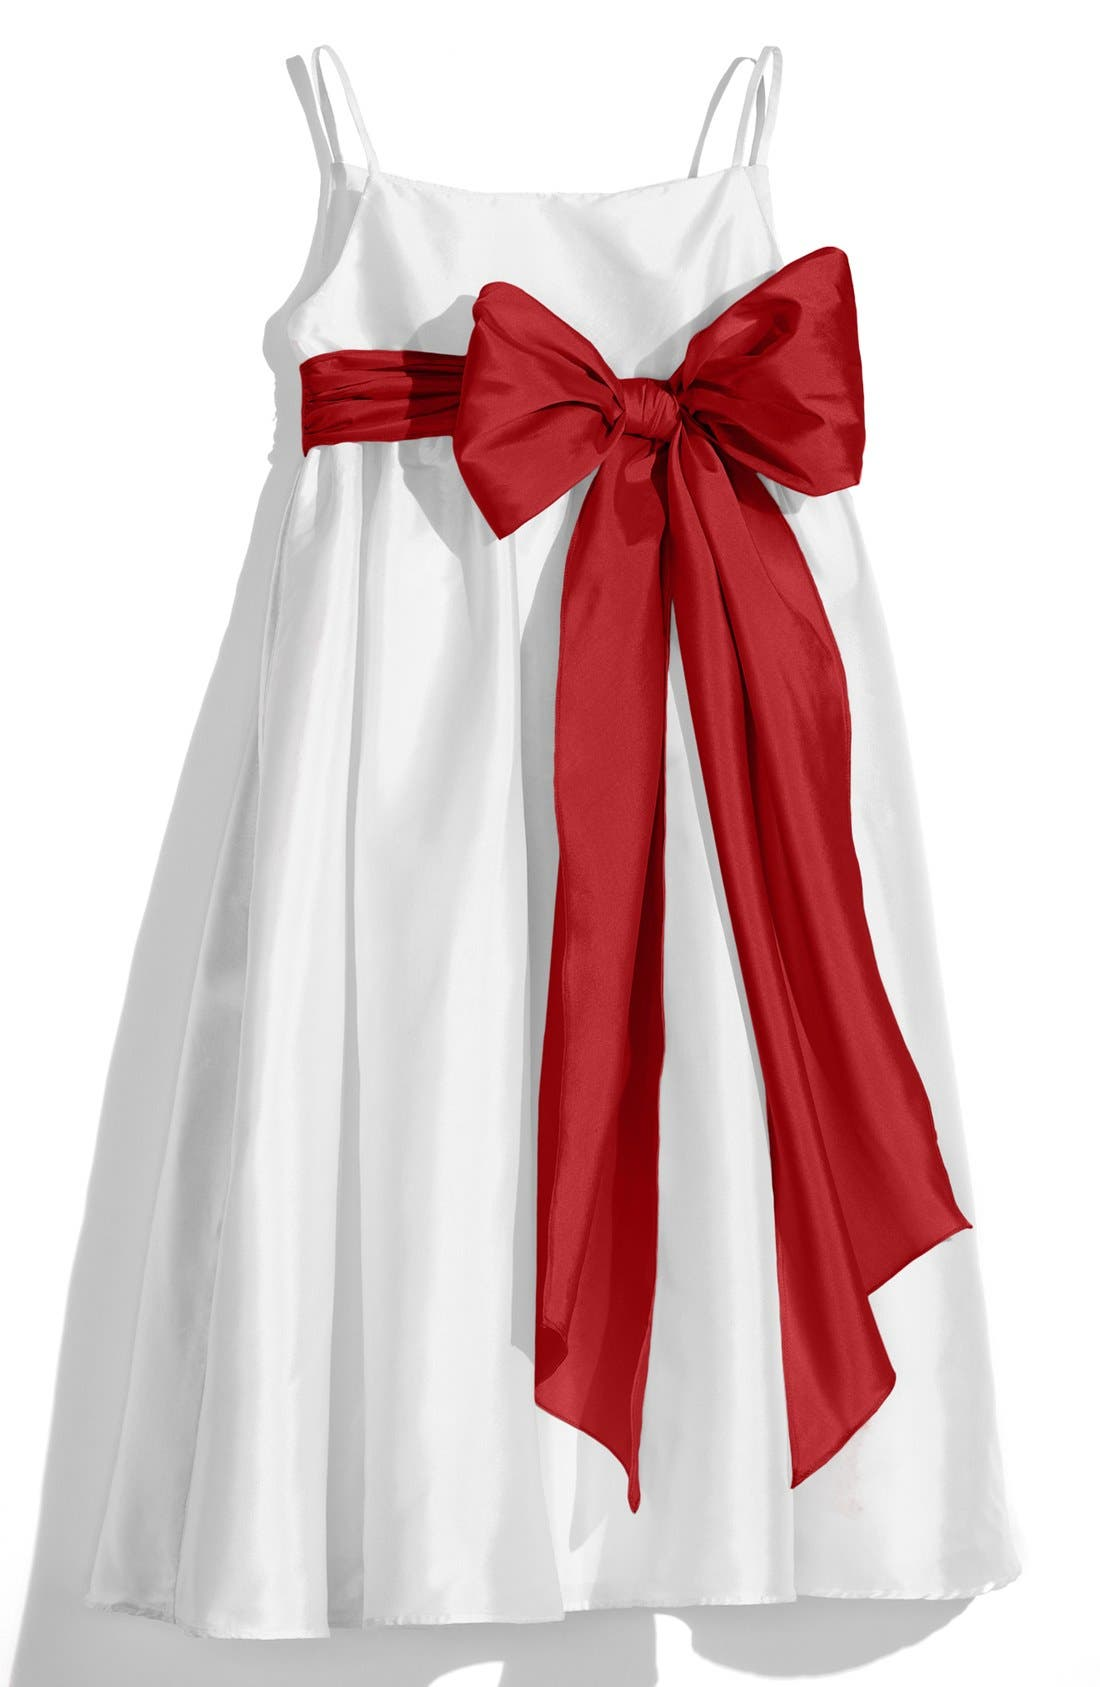 Us Angels White Sleeveless Empire Waist Taffeta Dress (Toddler, Little Girls & Big Girls)